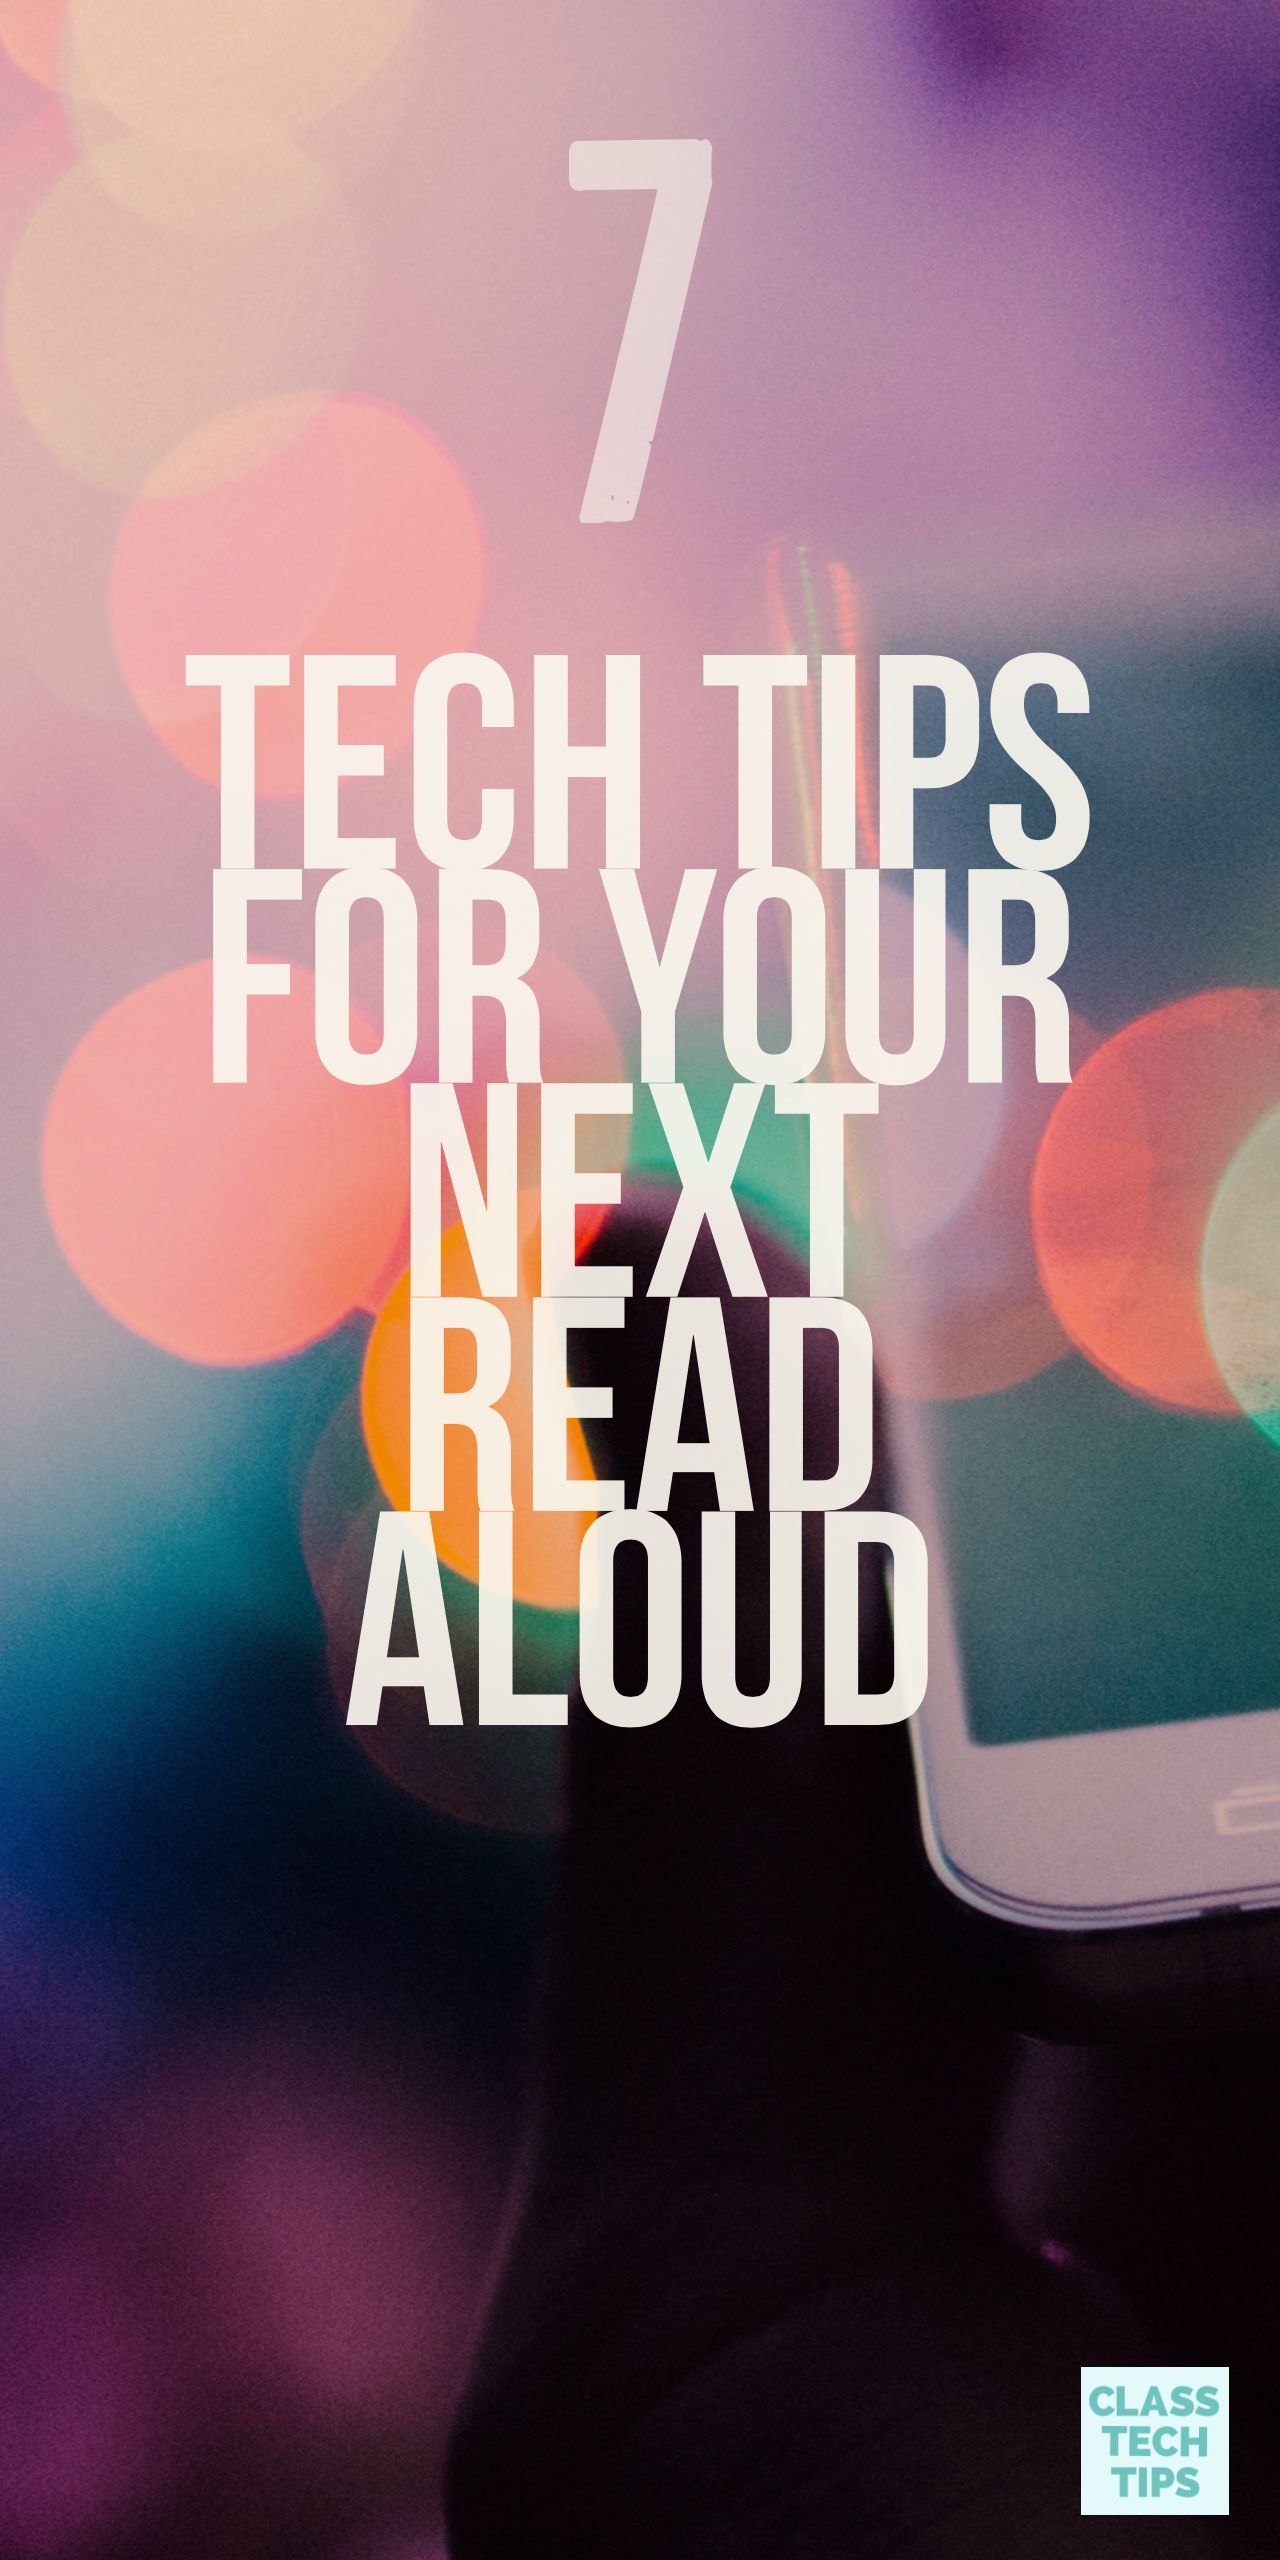 7 Tech Tips For Your Next Read Aloud